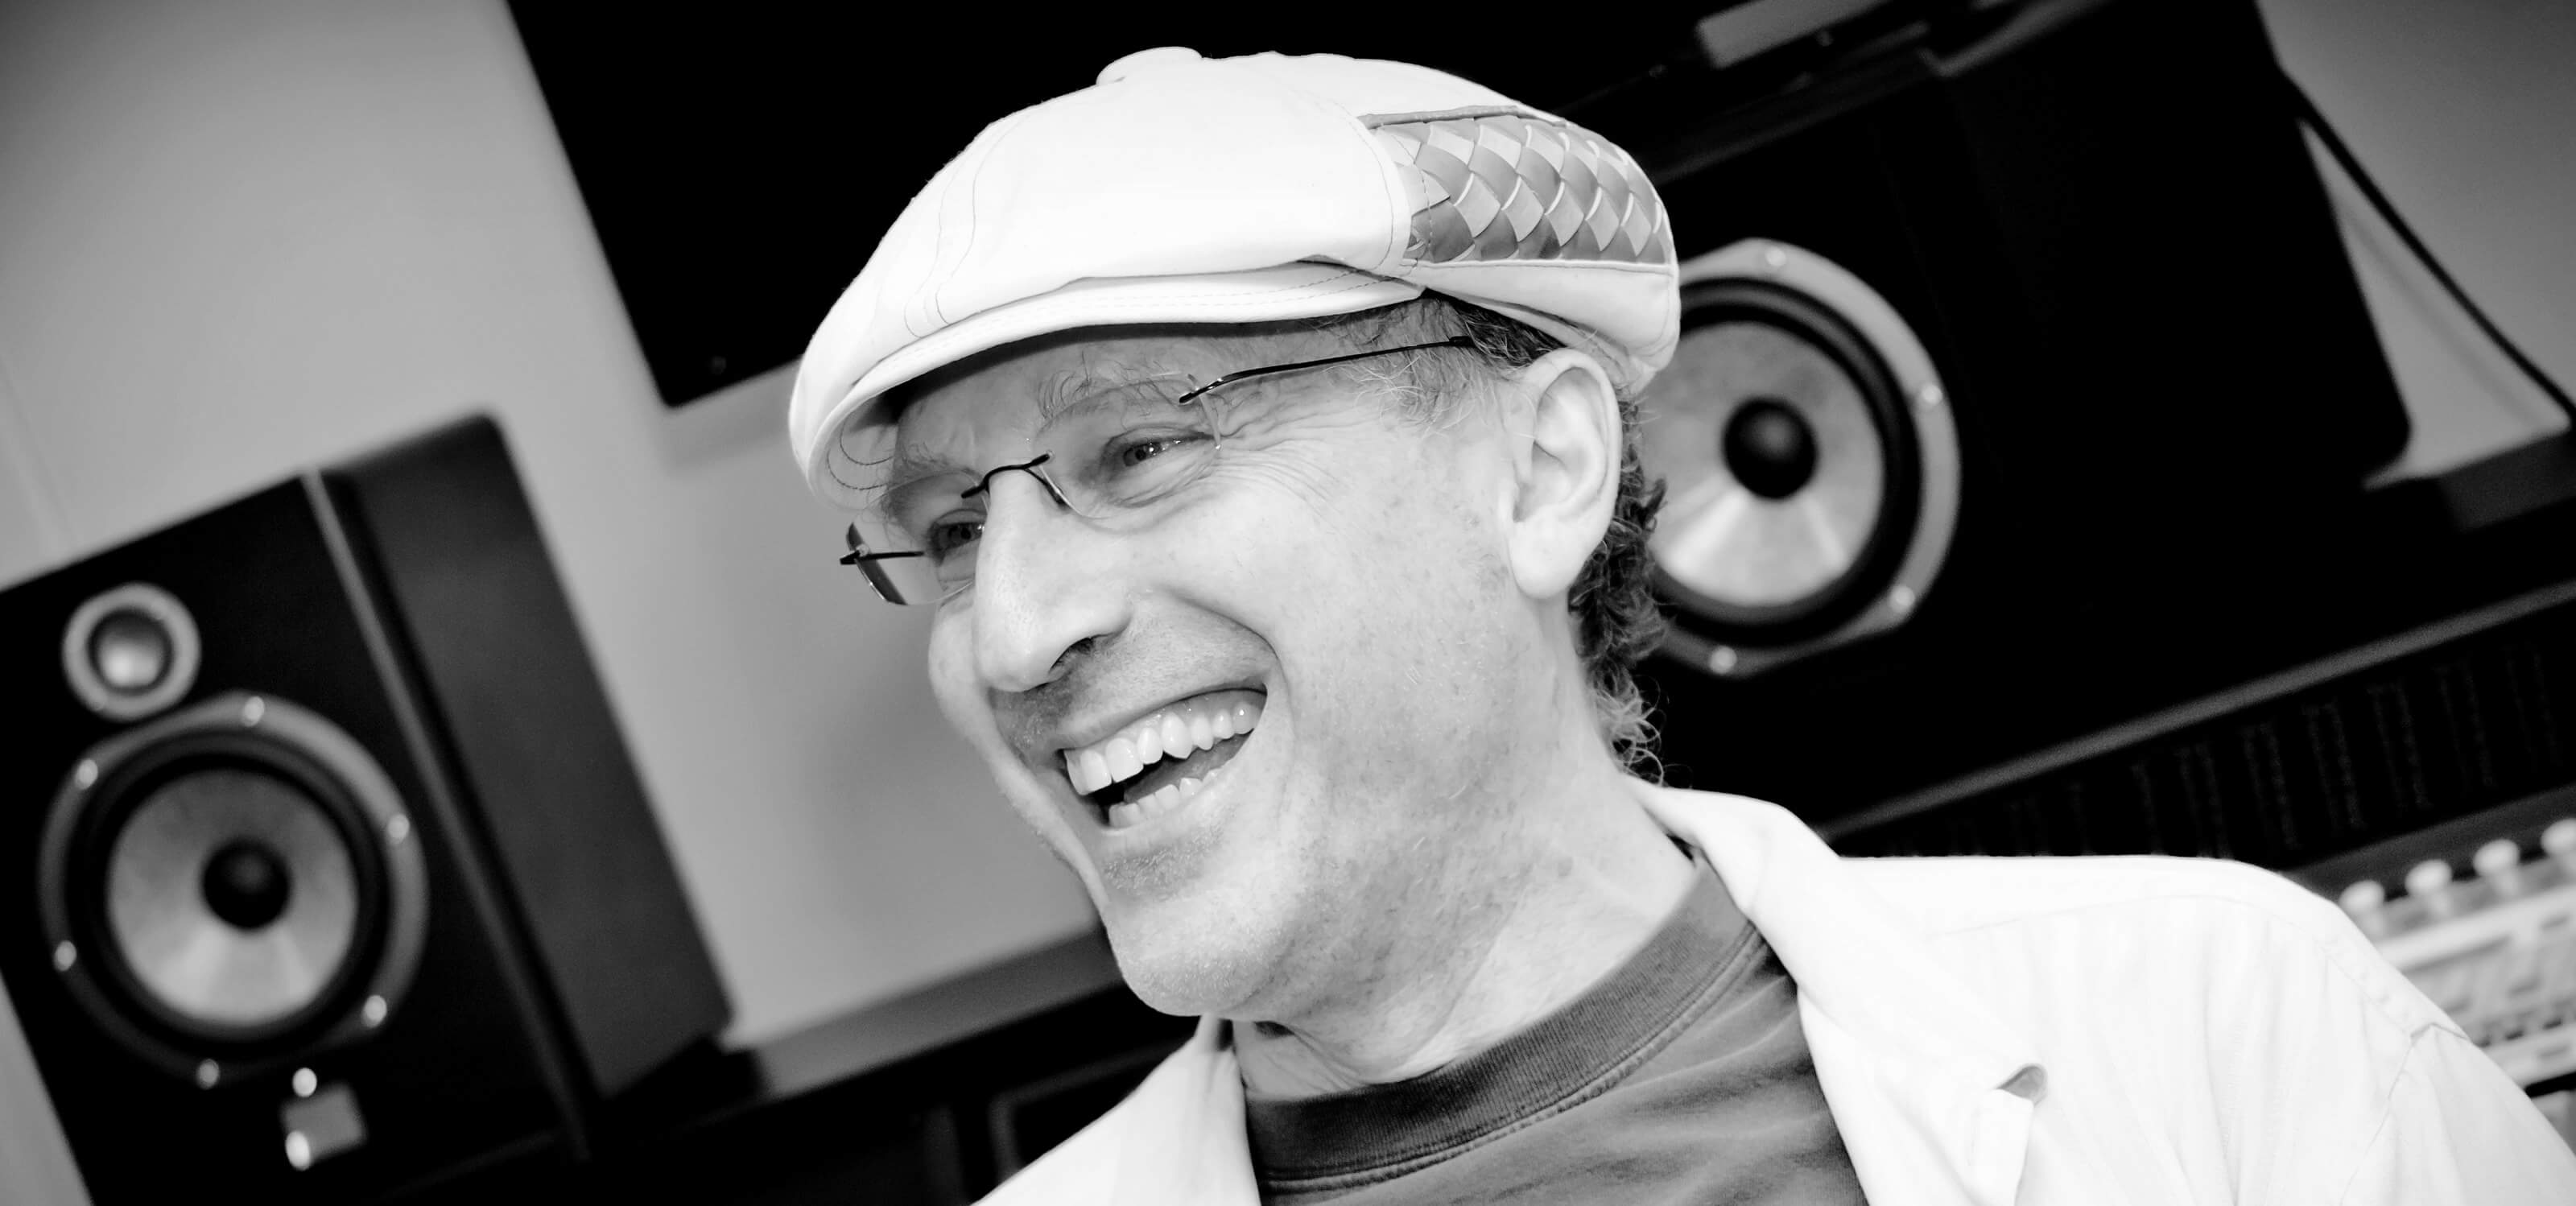 Composer David Kitay laughing in the DigiPen sound lab